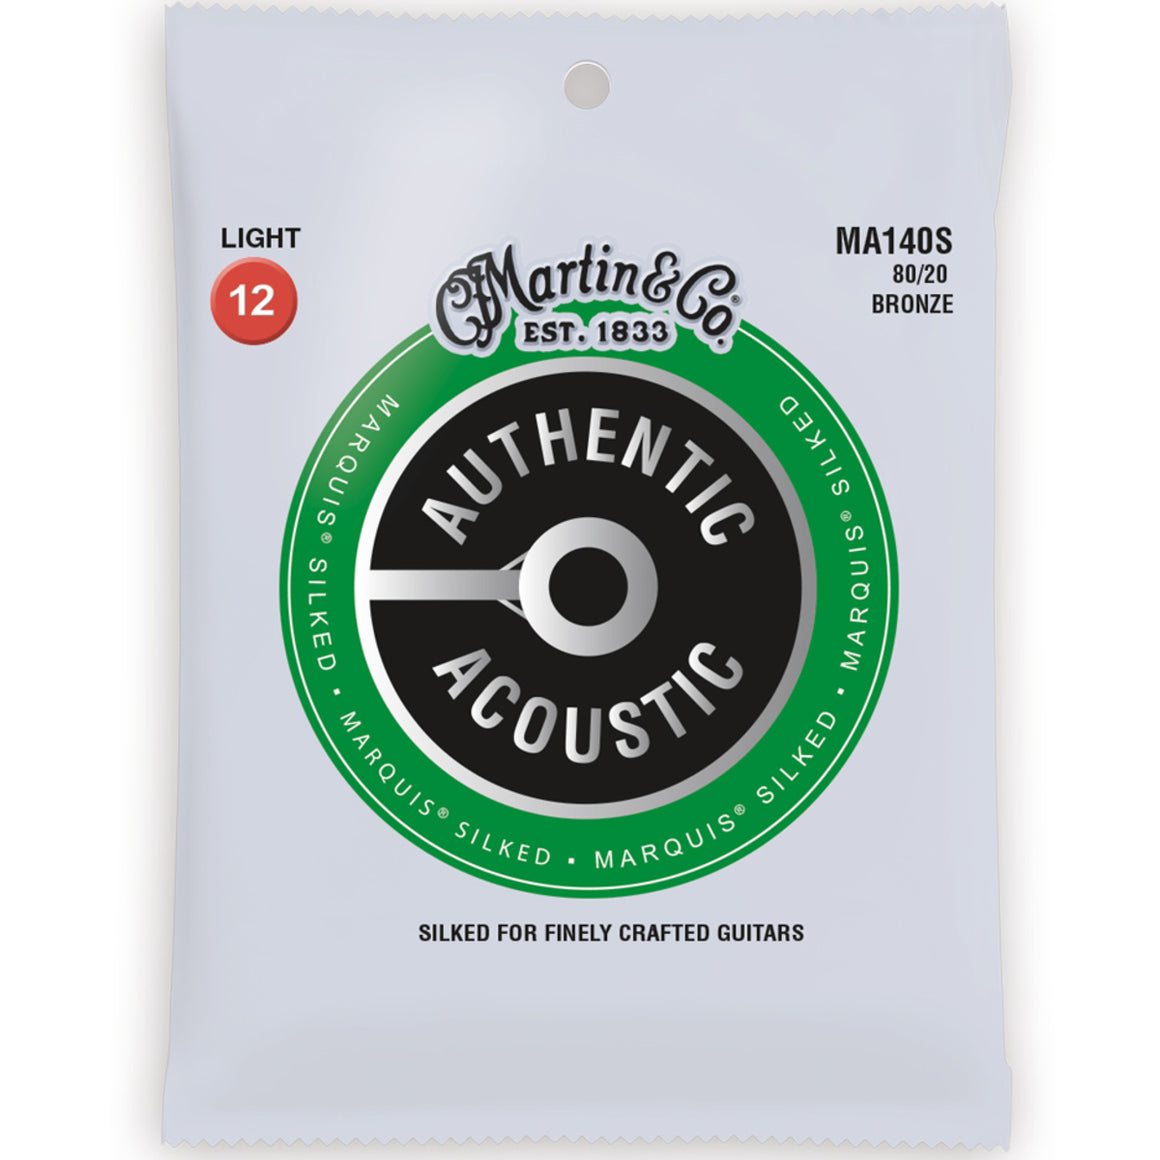 Martin MA140S Marquis Silked 80/20 Bronze 12-54 Light Acousic Guitar Strings